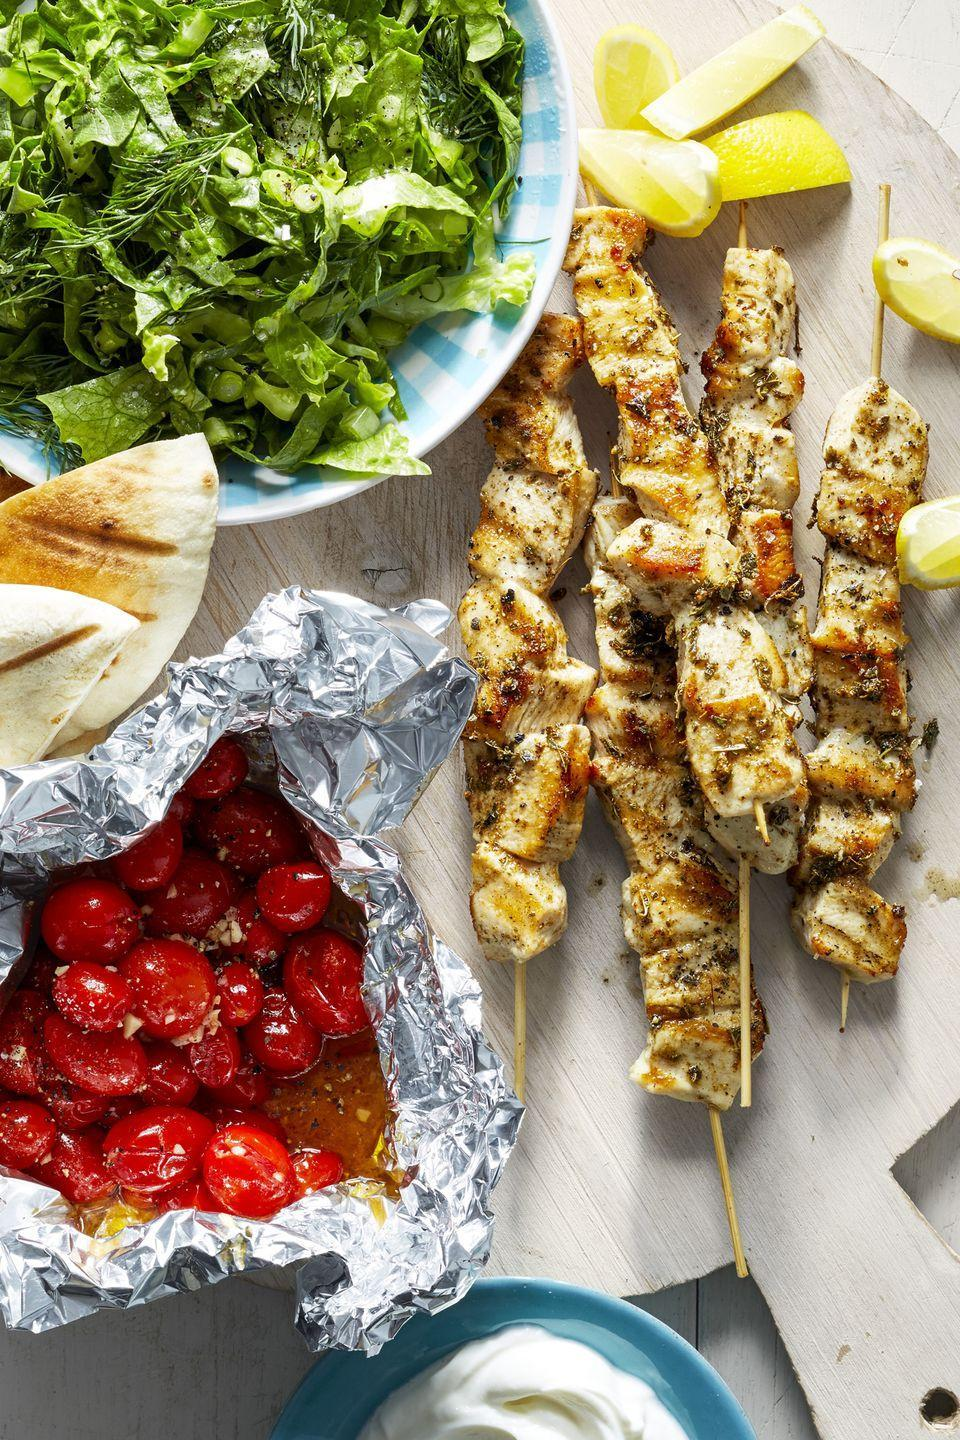 "<p>Know what makes grilled chicken kebabs even better? Toasted pita and garlicky tomatoes. </p><p><em><a href=""https://www.goodhousekeeping.com/food-recipes/easy/a45192/chicken-souvlaki-skewers-recipe/"" rel=""nofollow noopener"" target=""_blank"" data-ylk=""slk:Get the recipe for Chicken Souvlaki Skewers »"" class=""link rapid-noclick-resp"">Get the recipe for Chicken Souvlaki Skewers »</a></em> </p>"